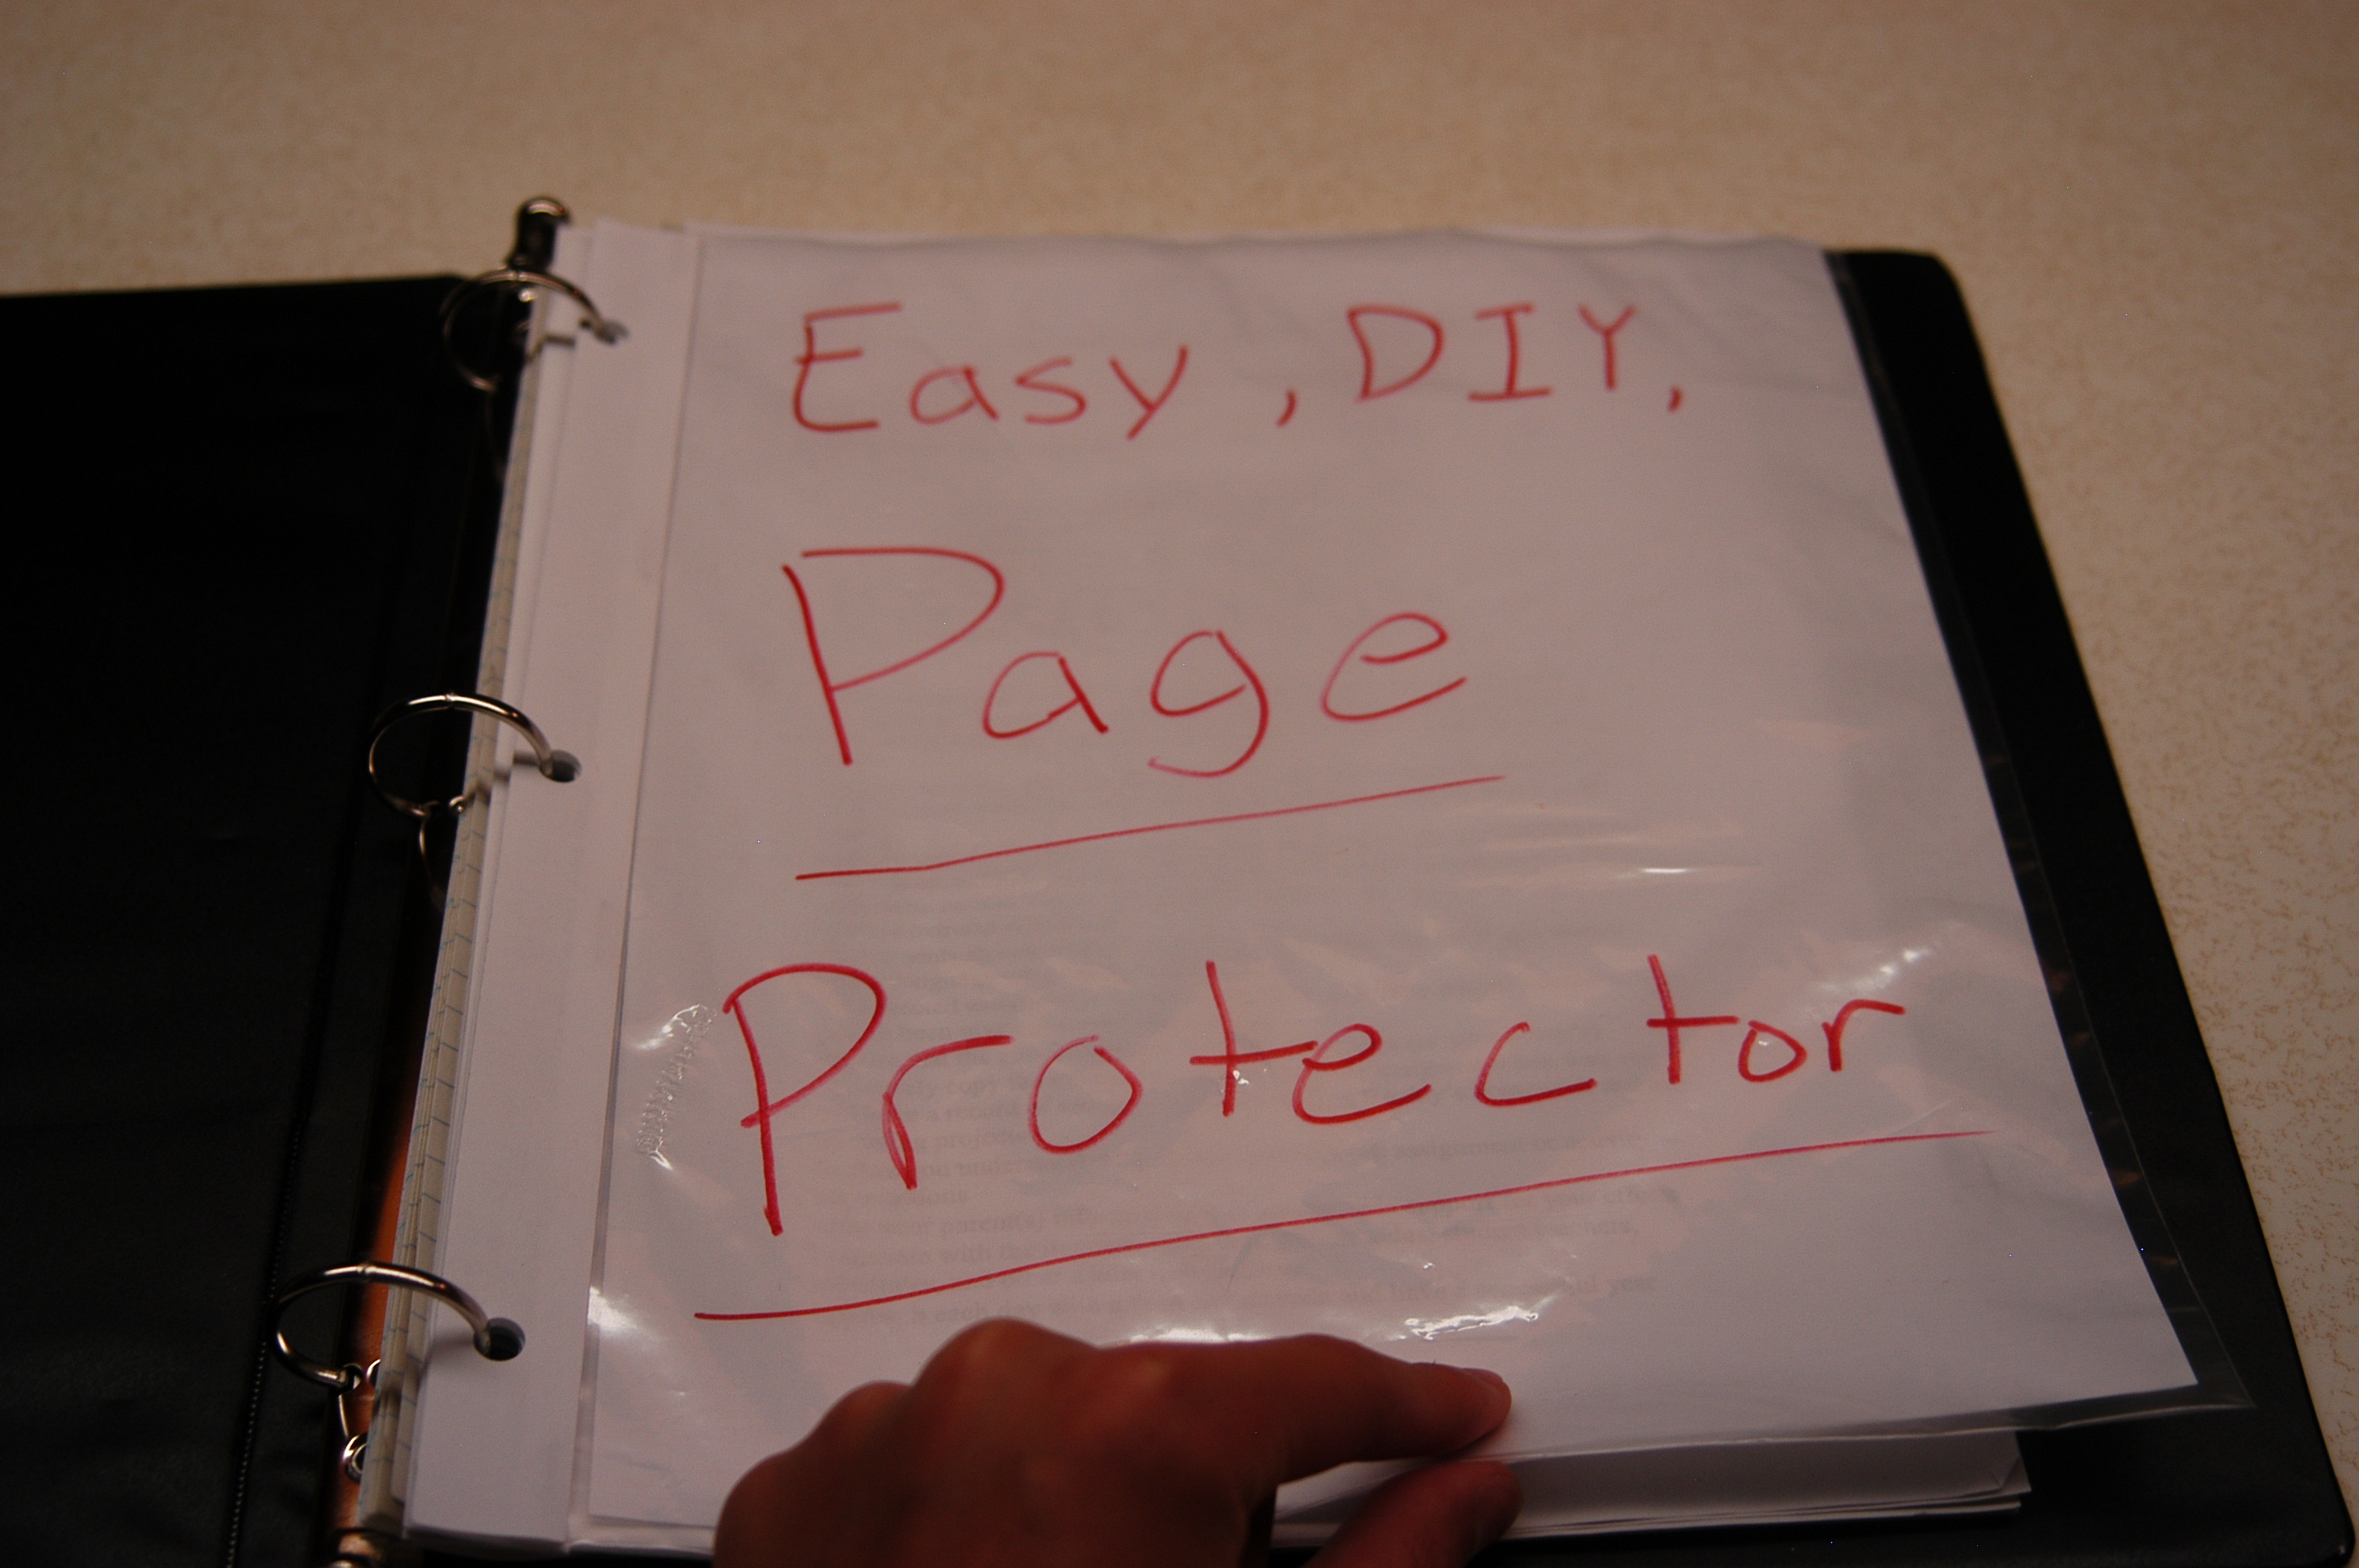 Picture of Easy, DIY, Page Protector